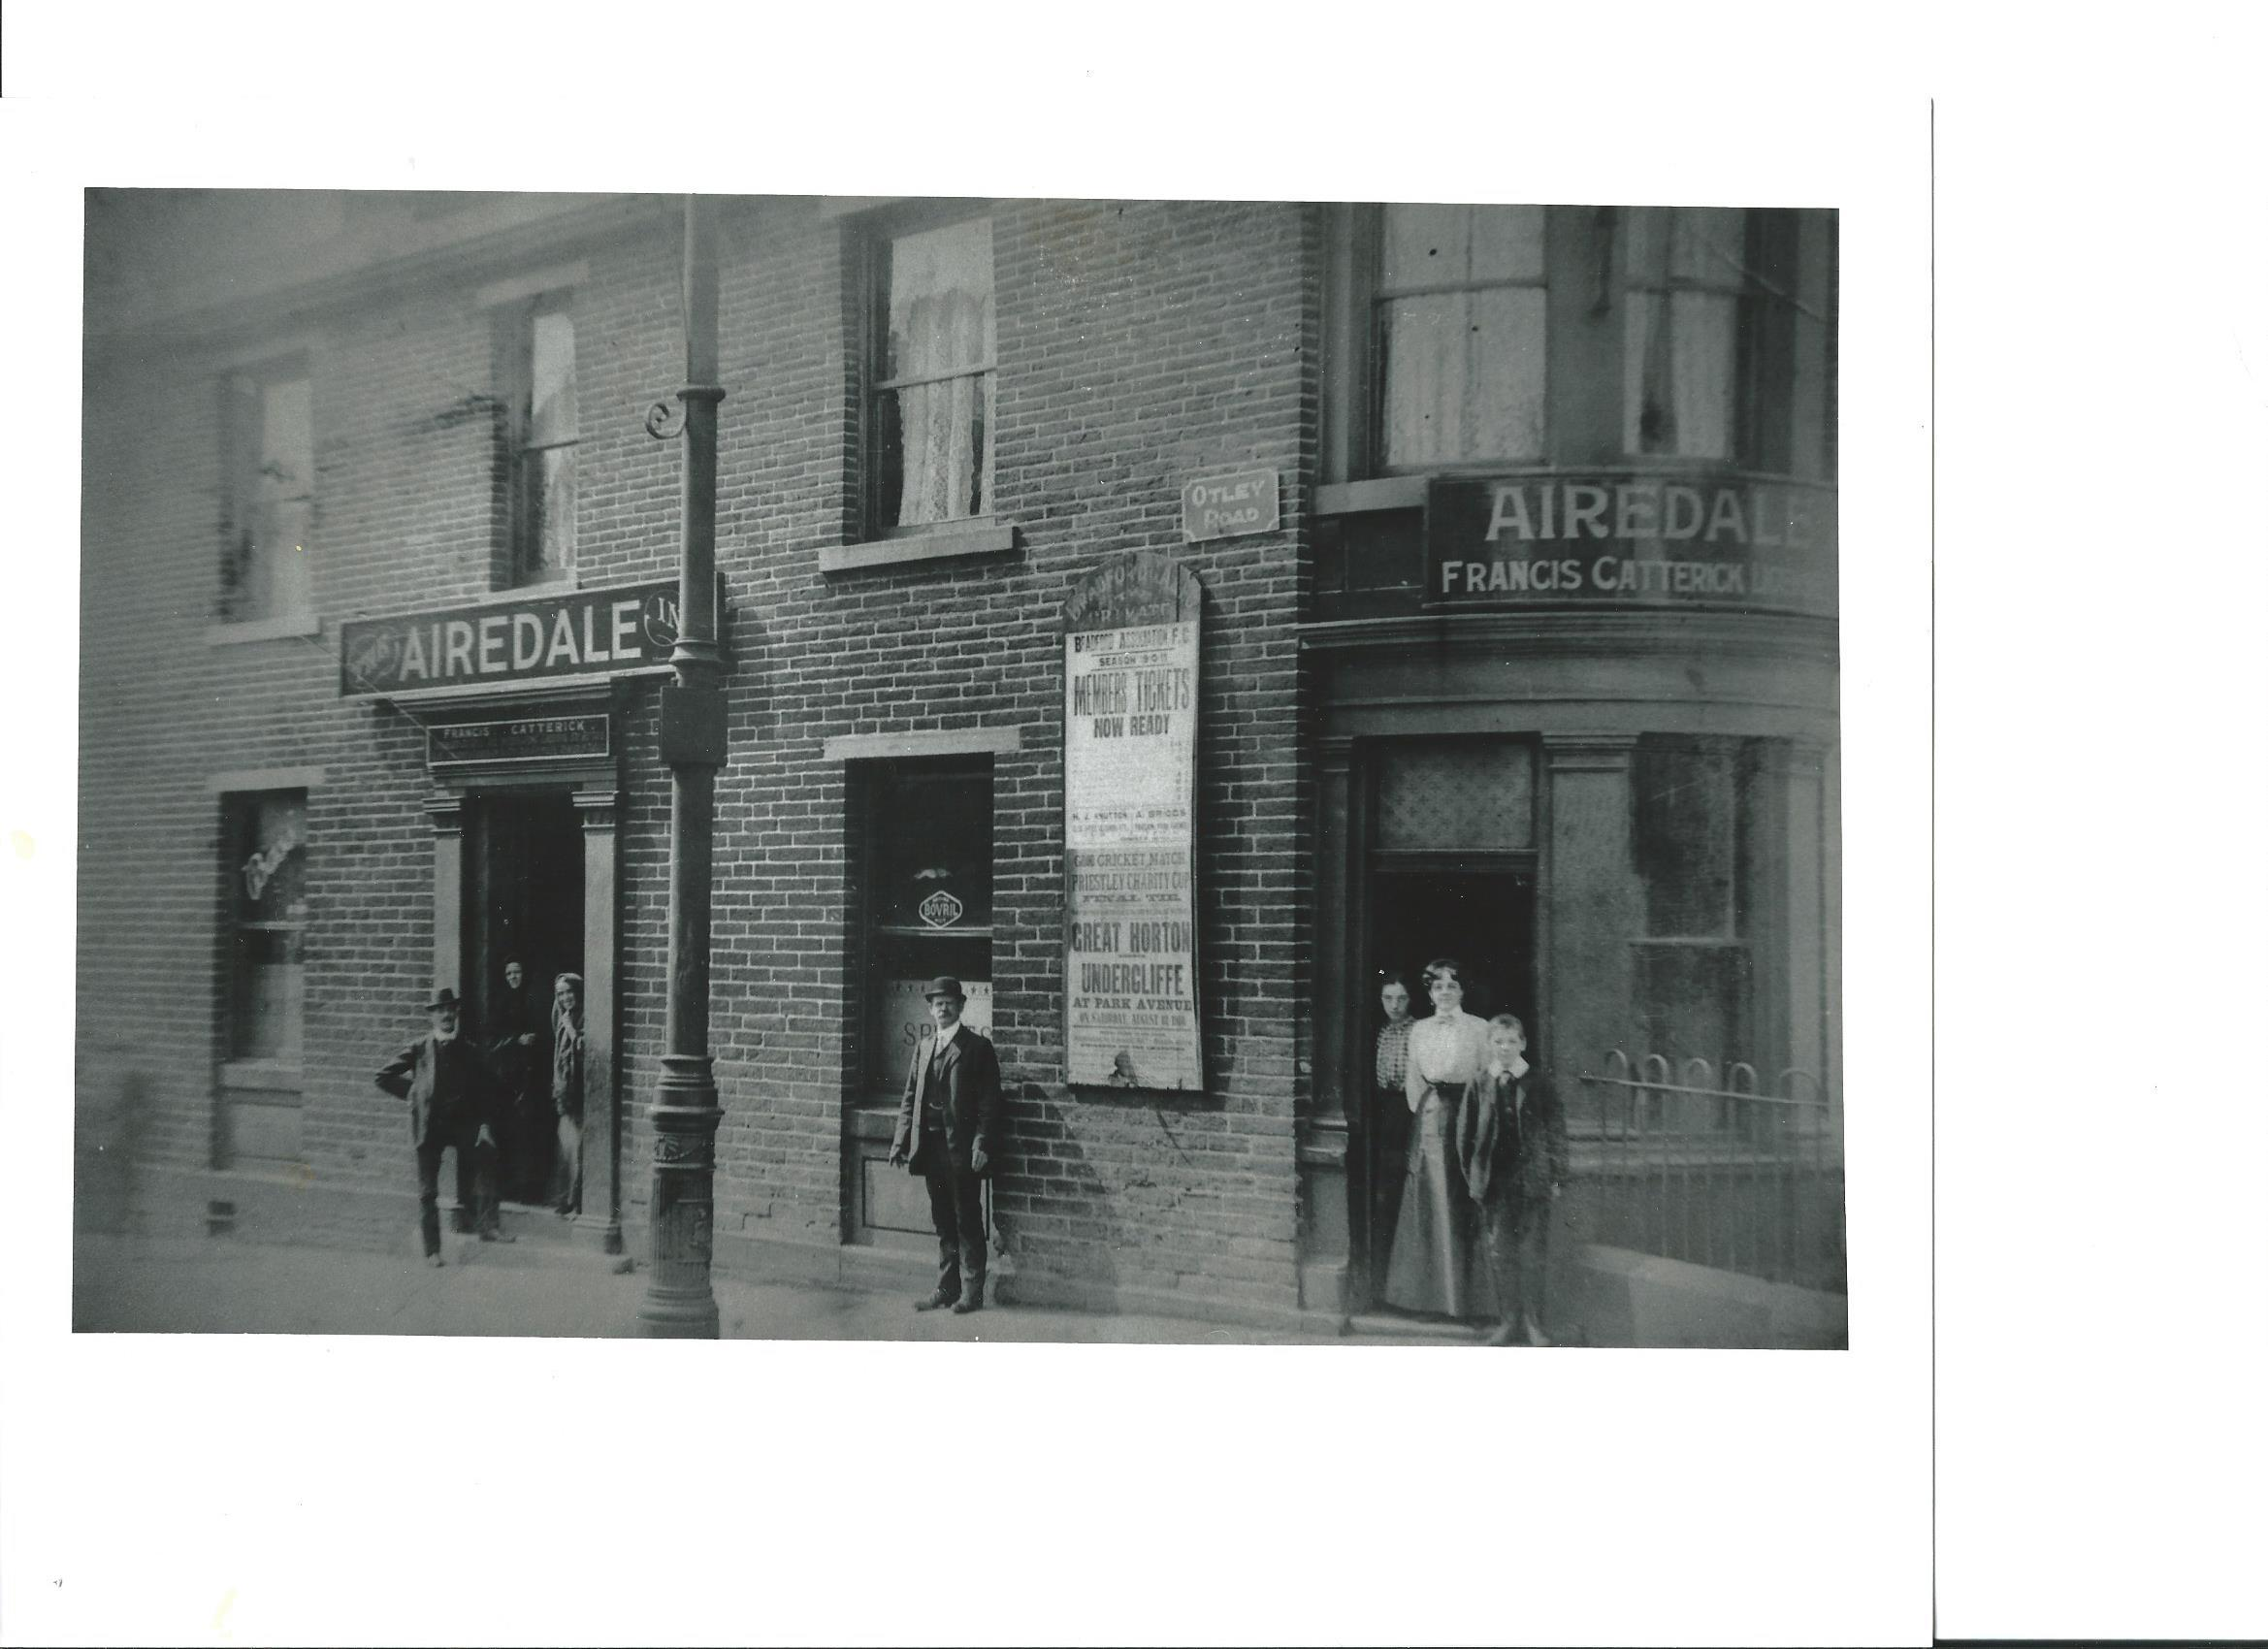 The Airedale pub, taken in 1910. Picture: Paul Jennings